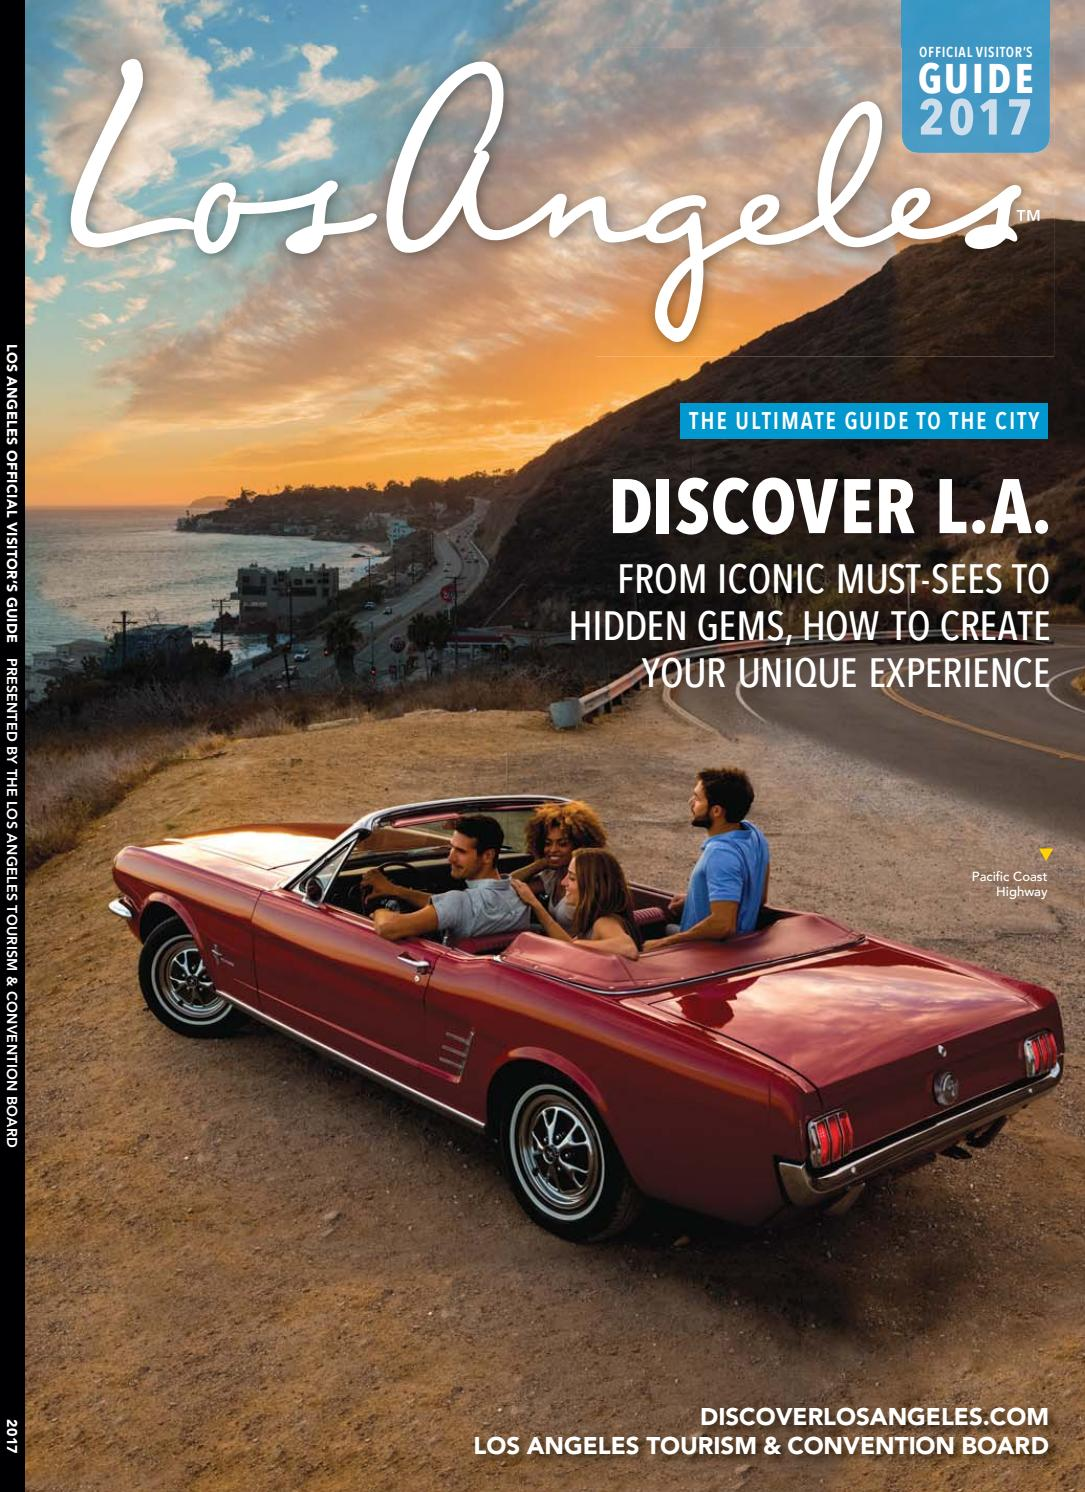 Los Angeles Official Visitors Guide 2017 By Lamcp Issuu Automotive Wiring Tips 8211 Using Relays